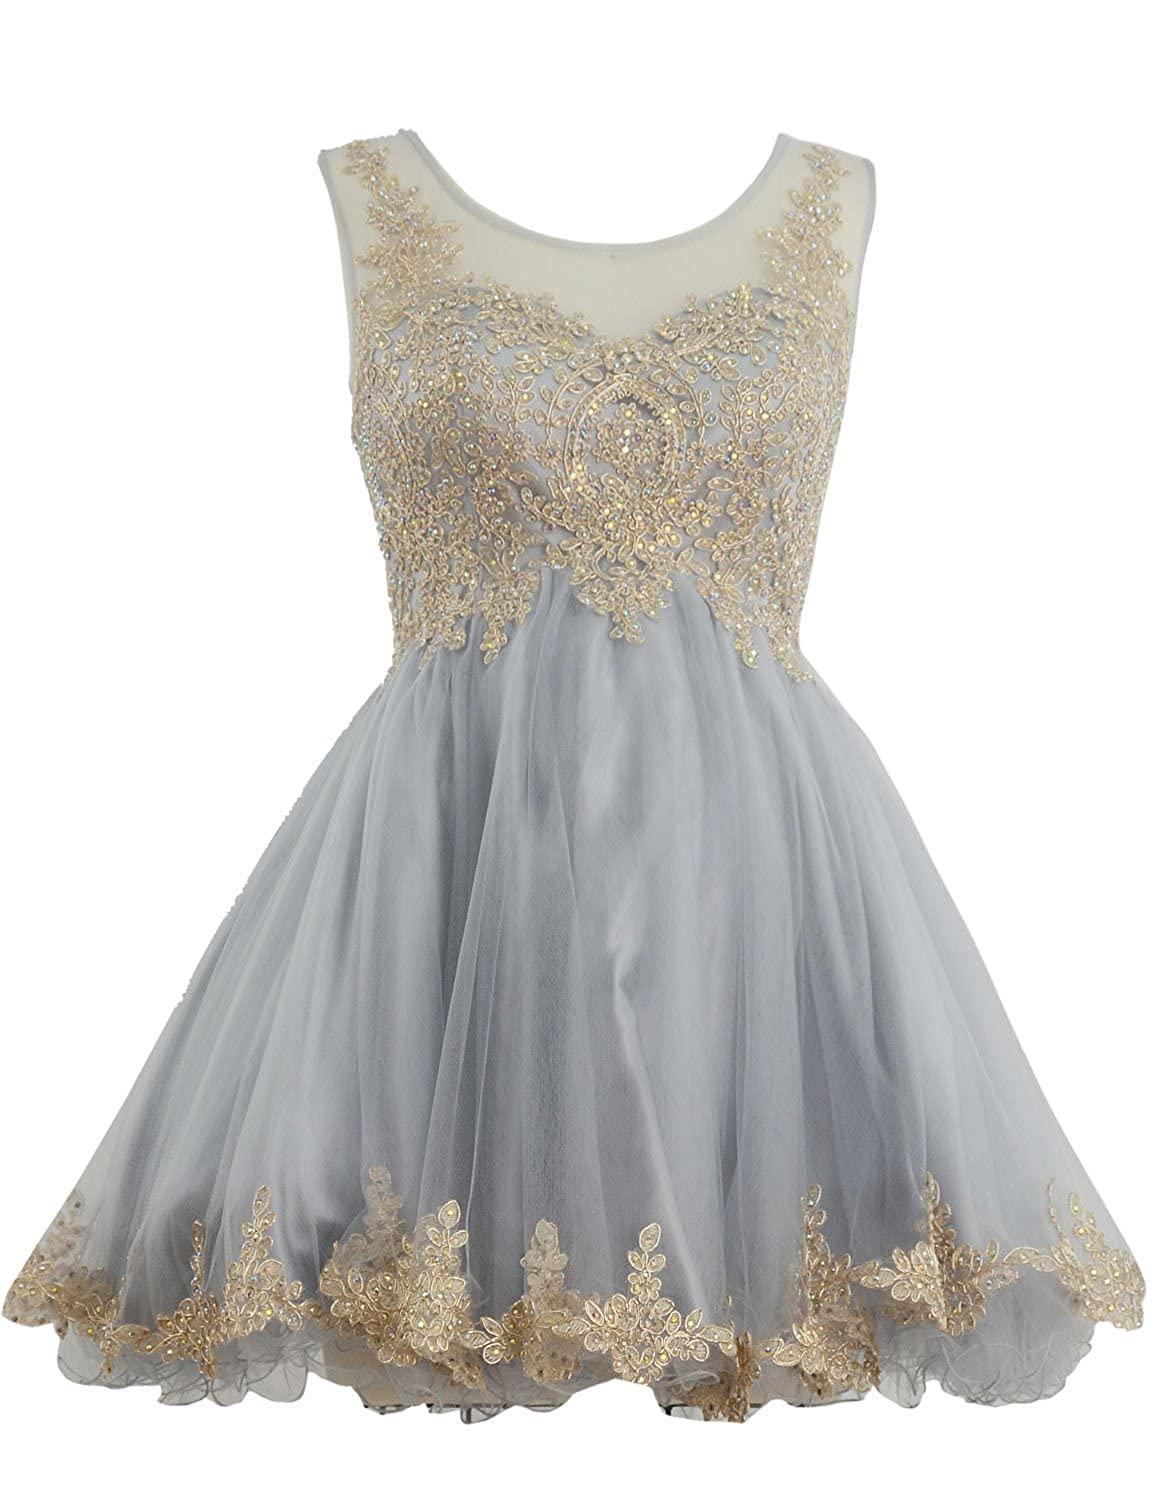 Clearbridal Women's Tulle Short Prom Party Dress Vintage Applique Sleeveless Bridesmaid Dress SD365